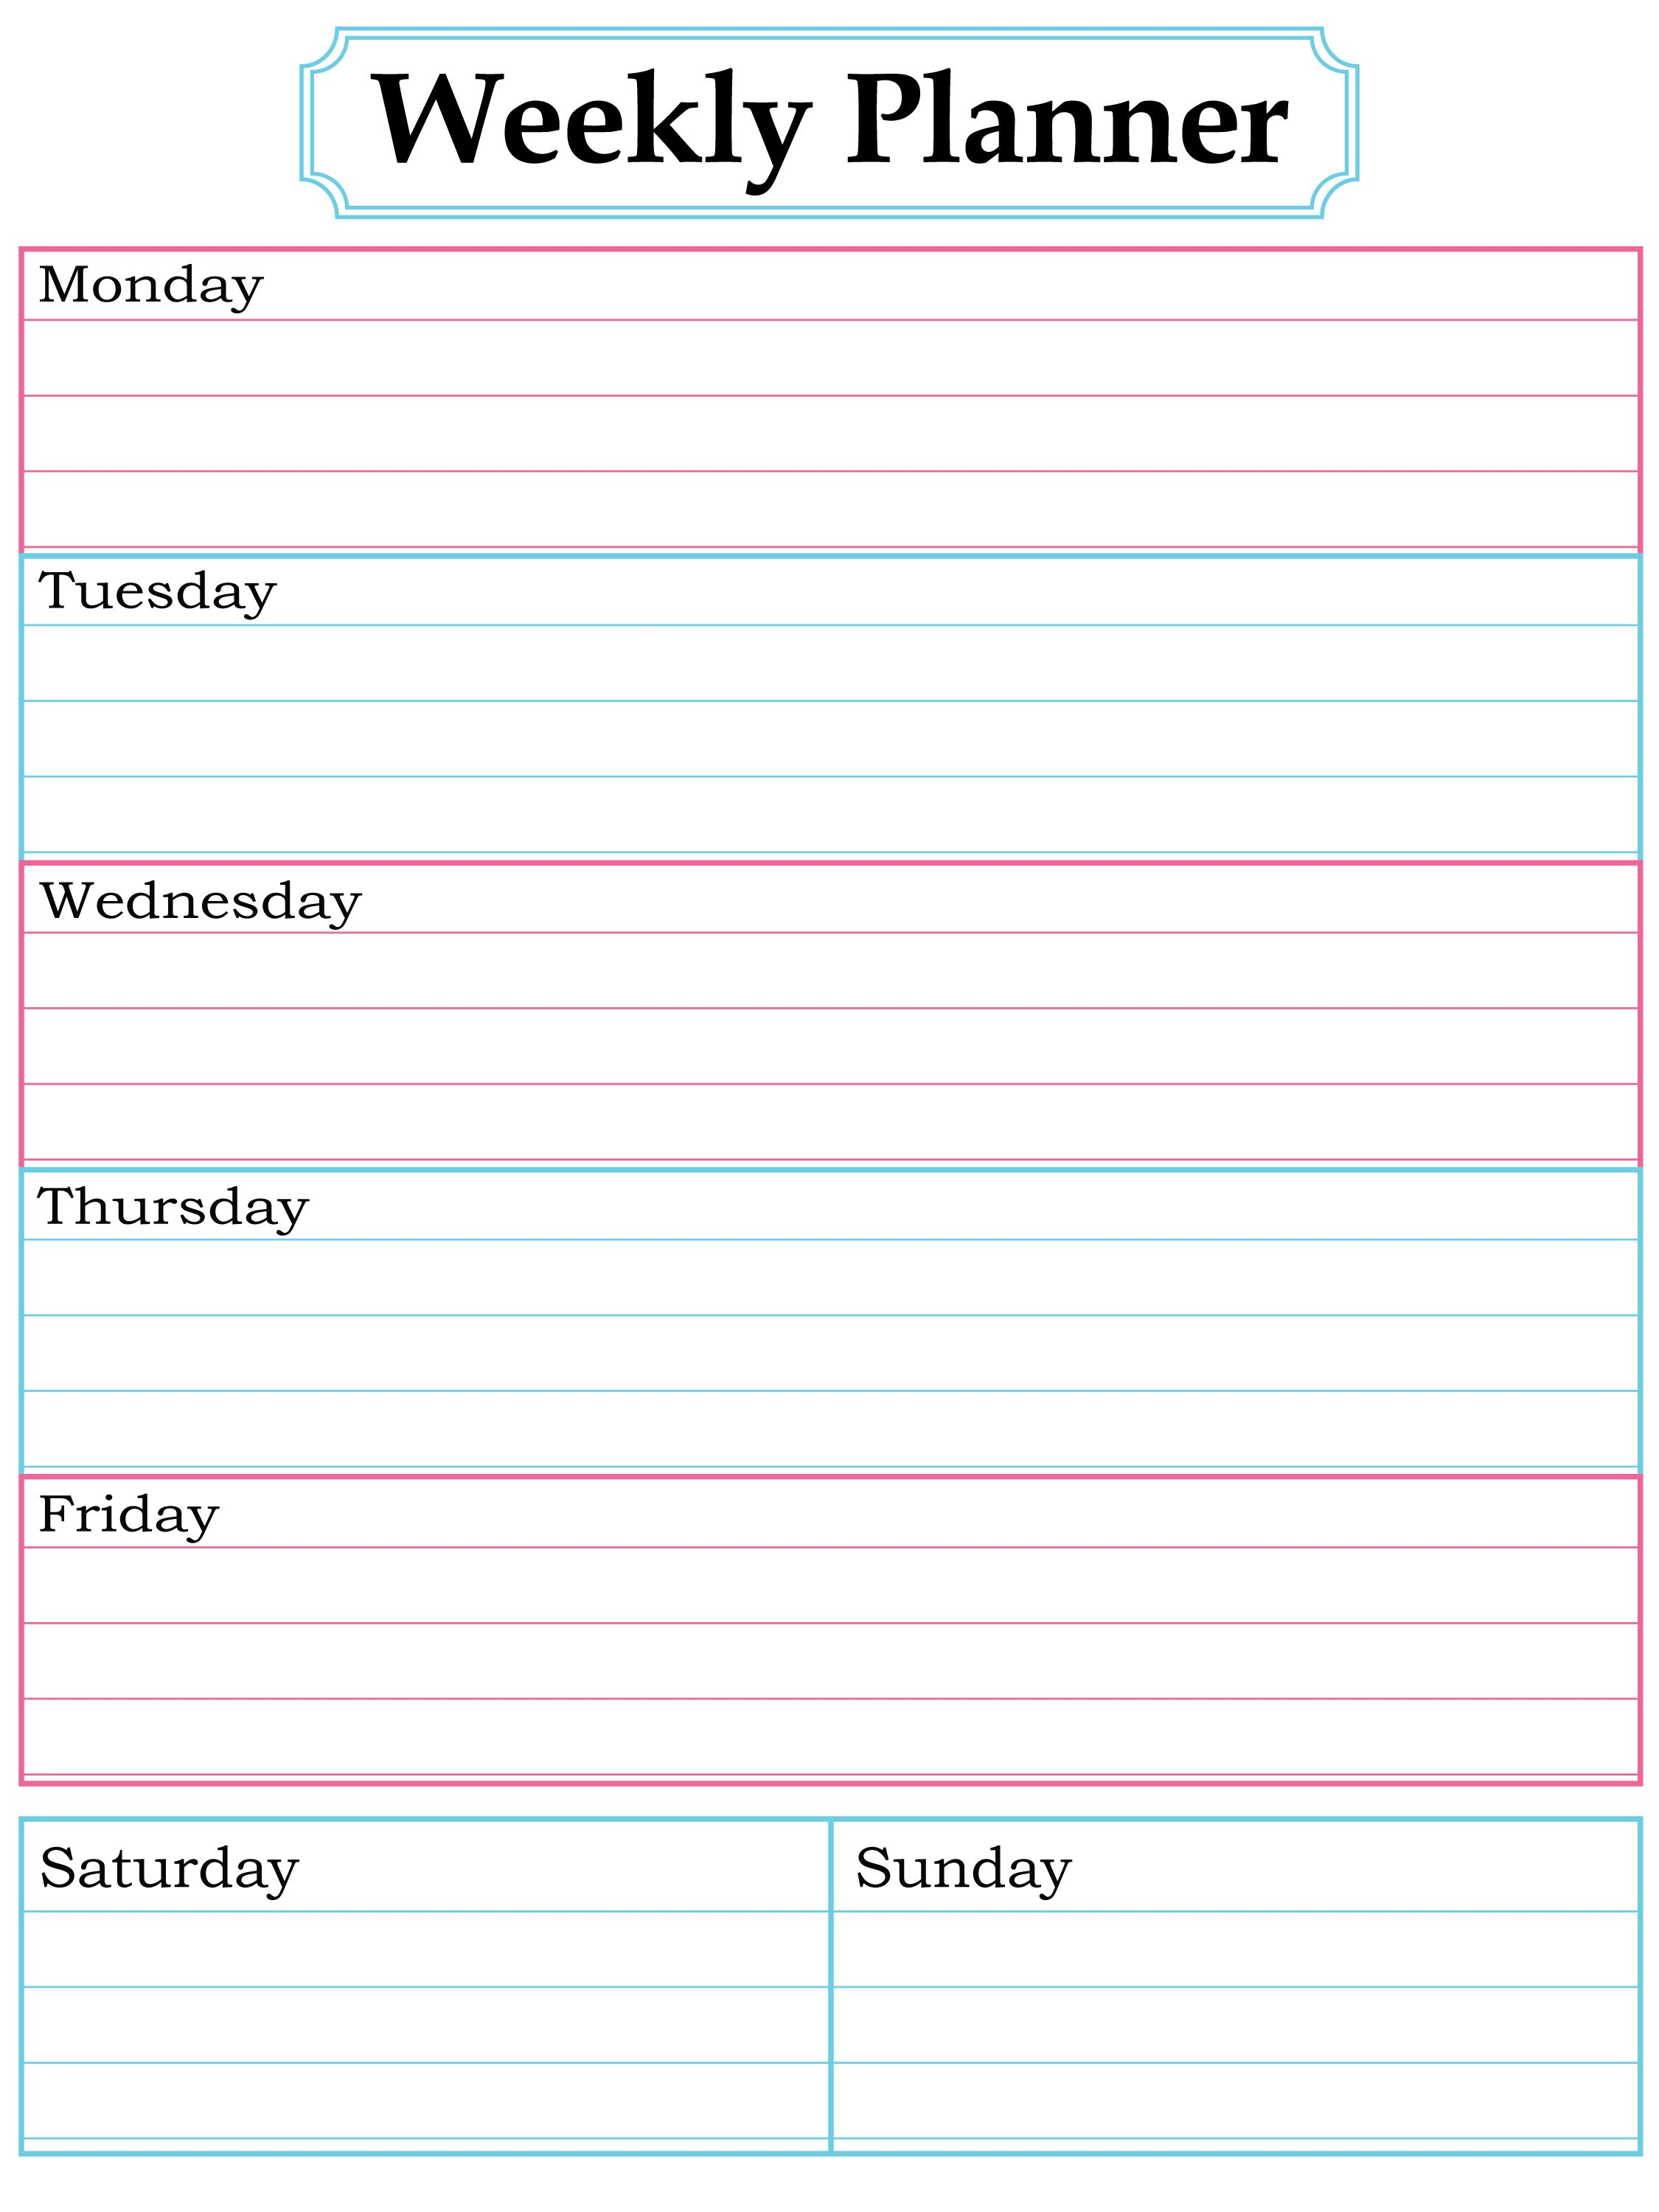 17 Best images about Printable Weekly Calendars on Pinterest ...